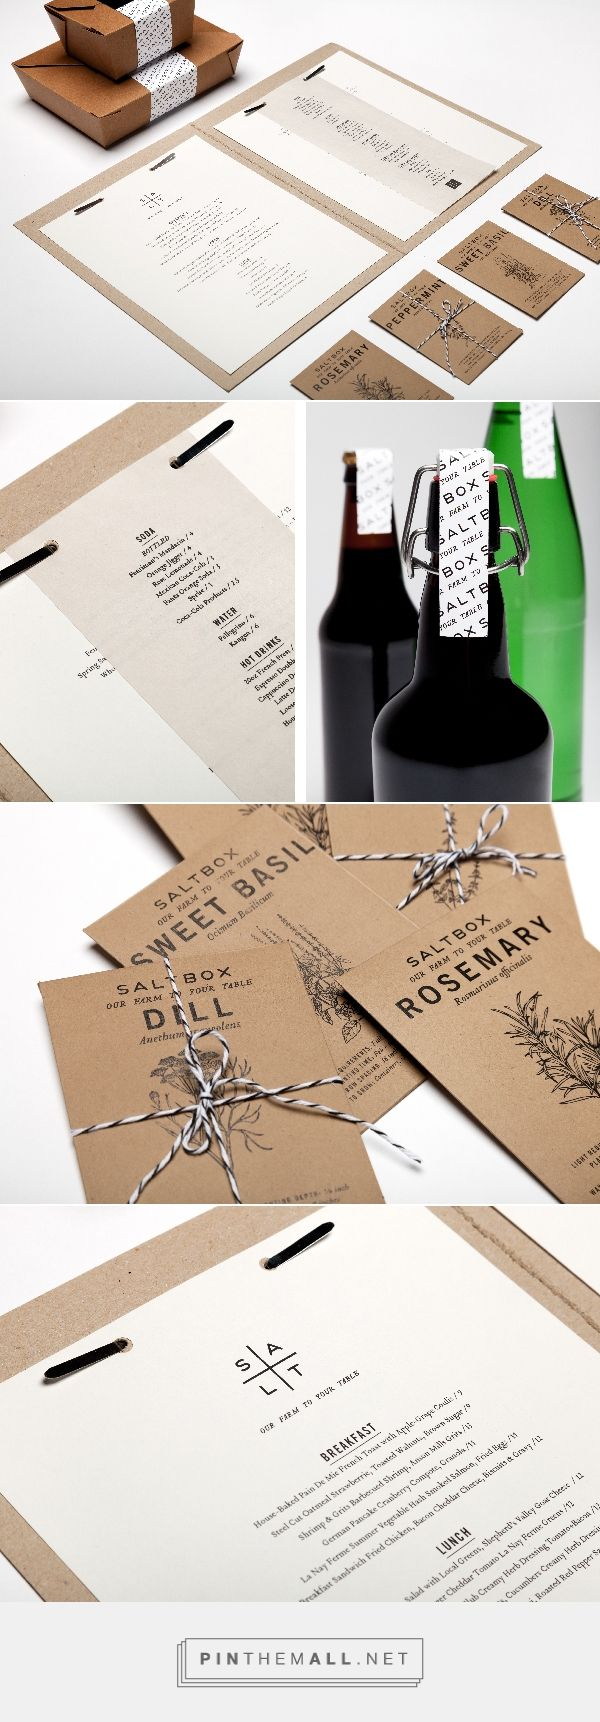 salt box packaging branding on behance by elyse taylor salt lake city ut curated by packaging diva pd salt box is a restaurant that only uses local